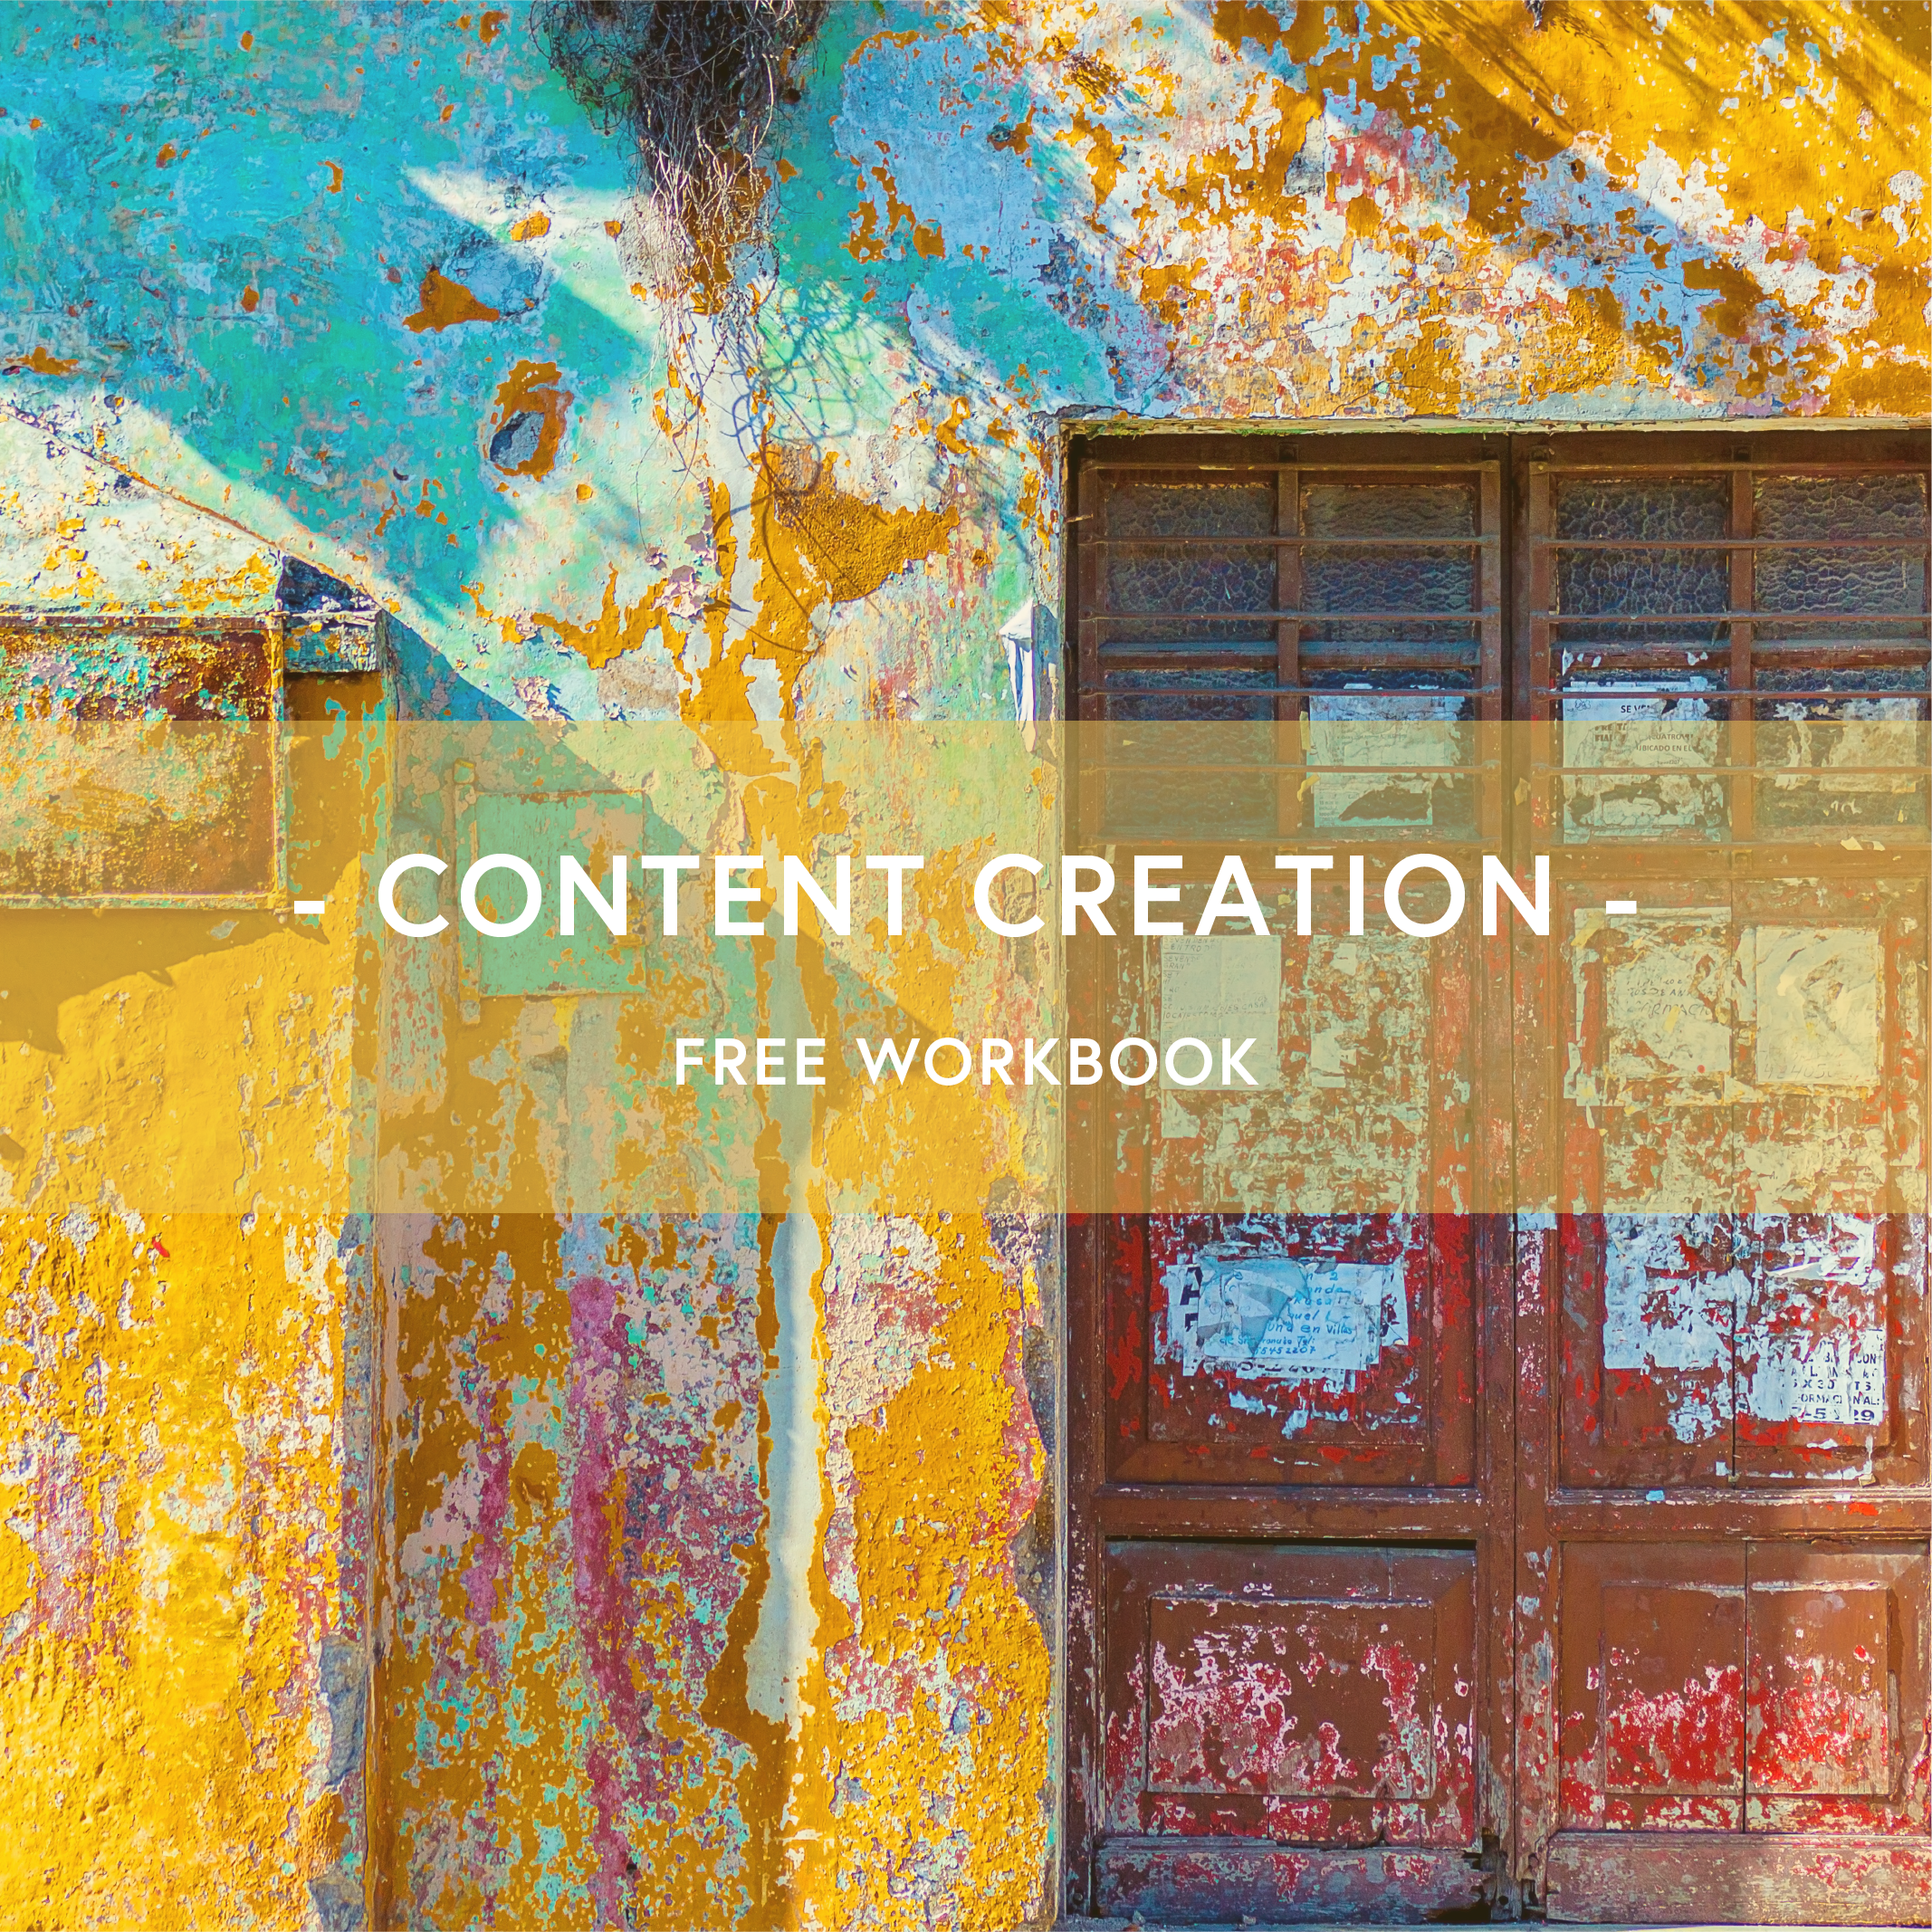 Content-creation-workbook.png